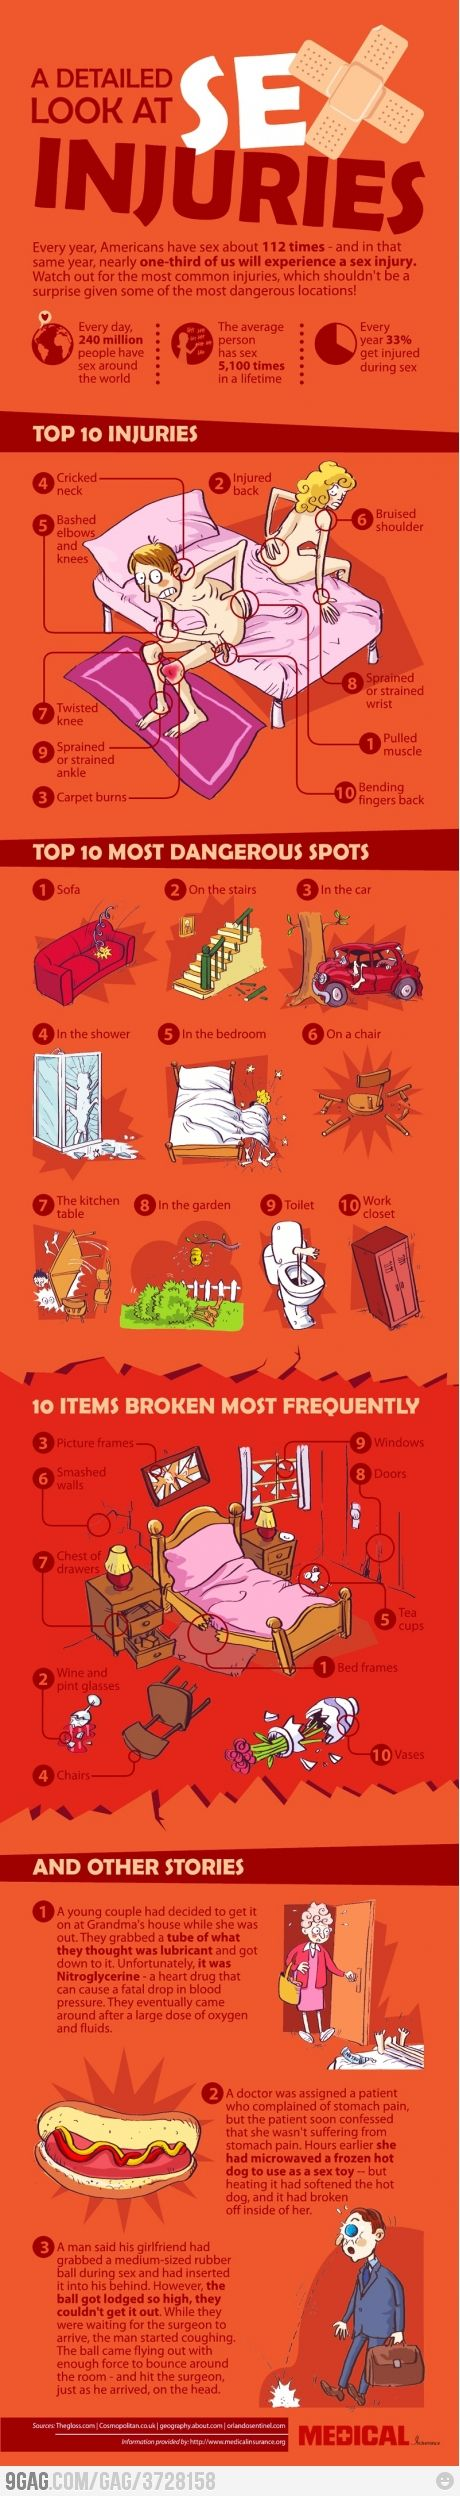 Sex injuries infographic: